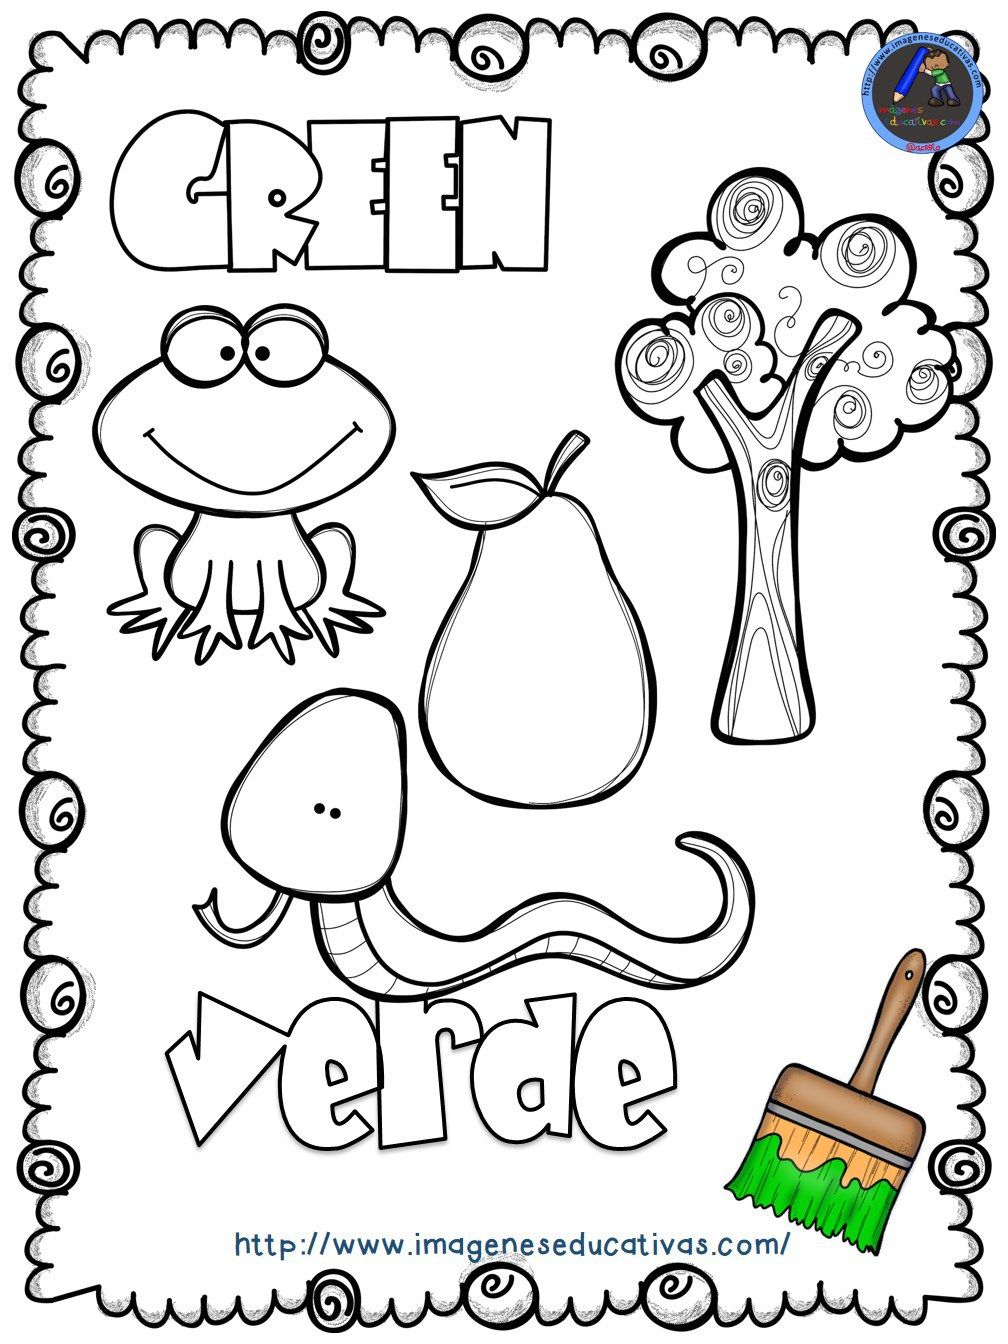 Mi Libro De Los Colores Para Colorear Edu For Kids Colores En